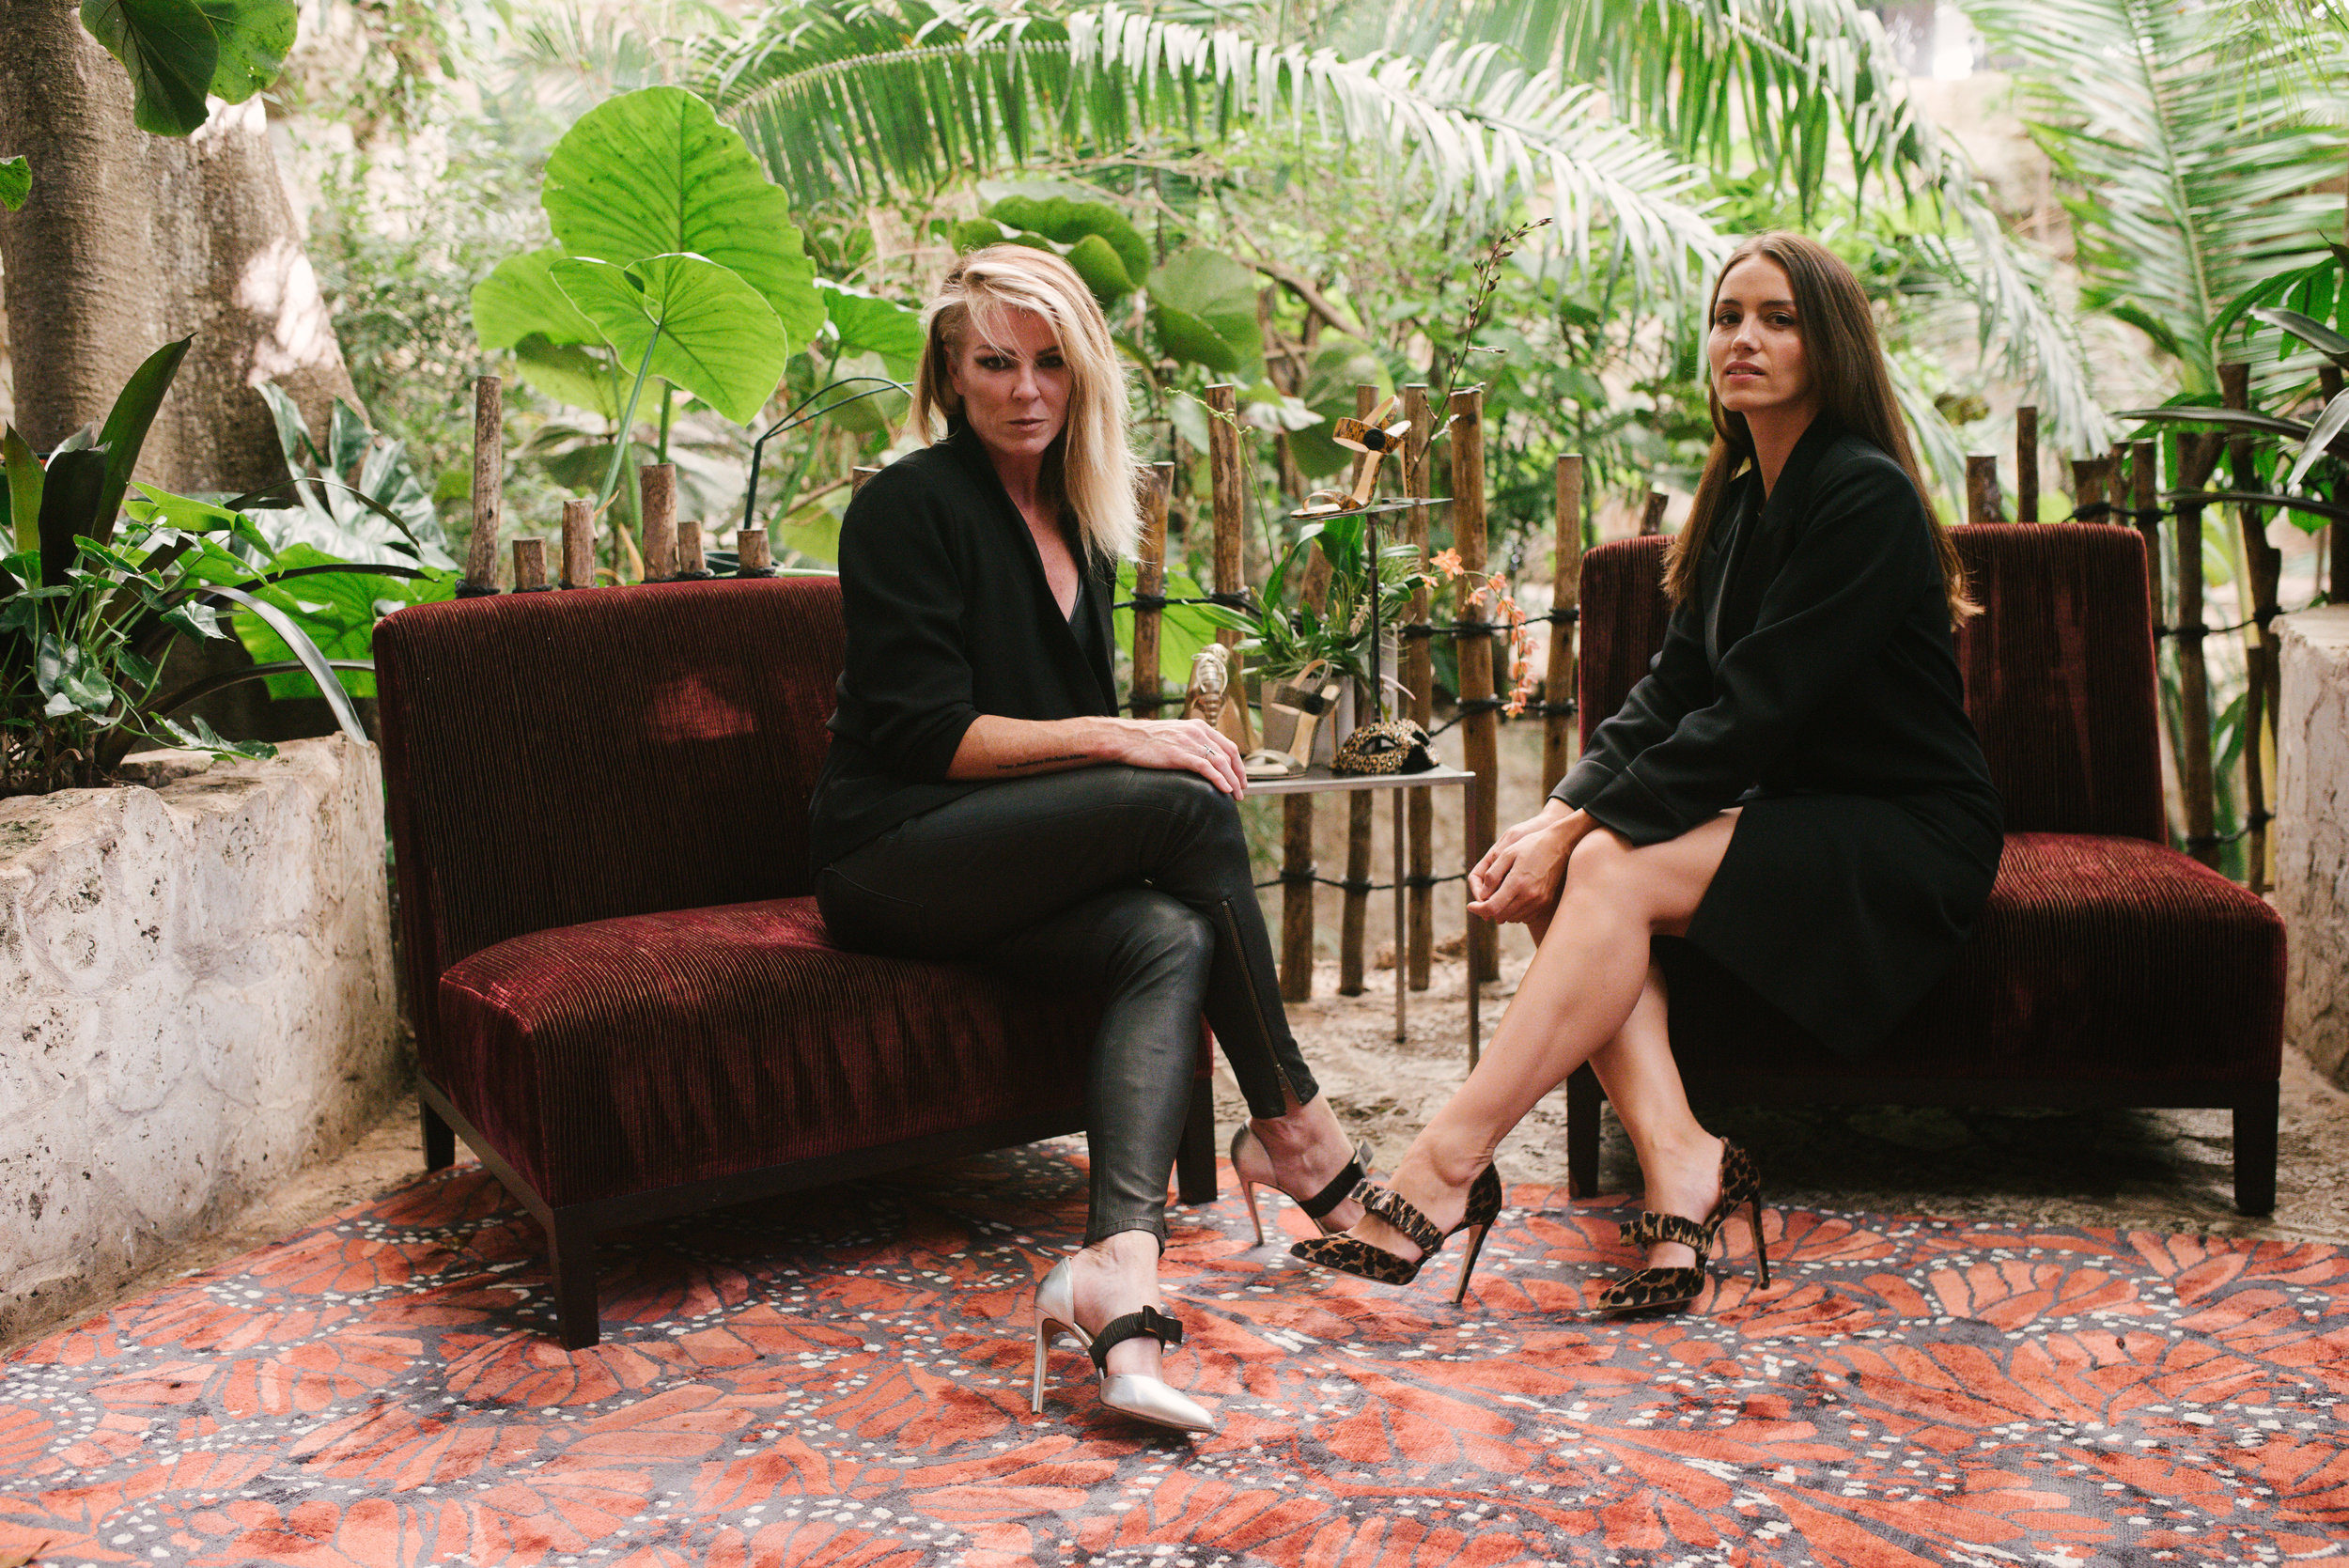 Chloe Gosselin & New York Vintage Take Dallas. - Take a Look Inside the One-Of-A-Kind Shopping Experience at the Dallas World Aquarium.